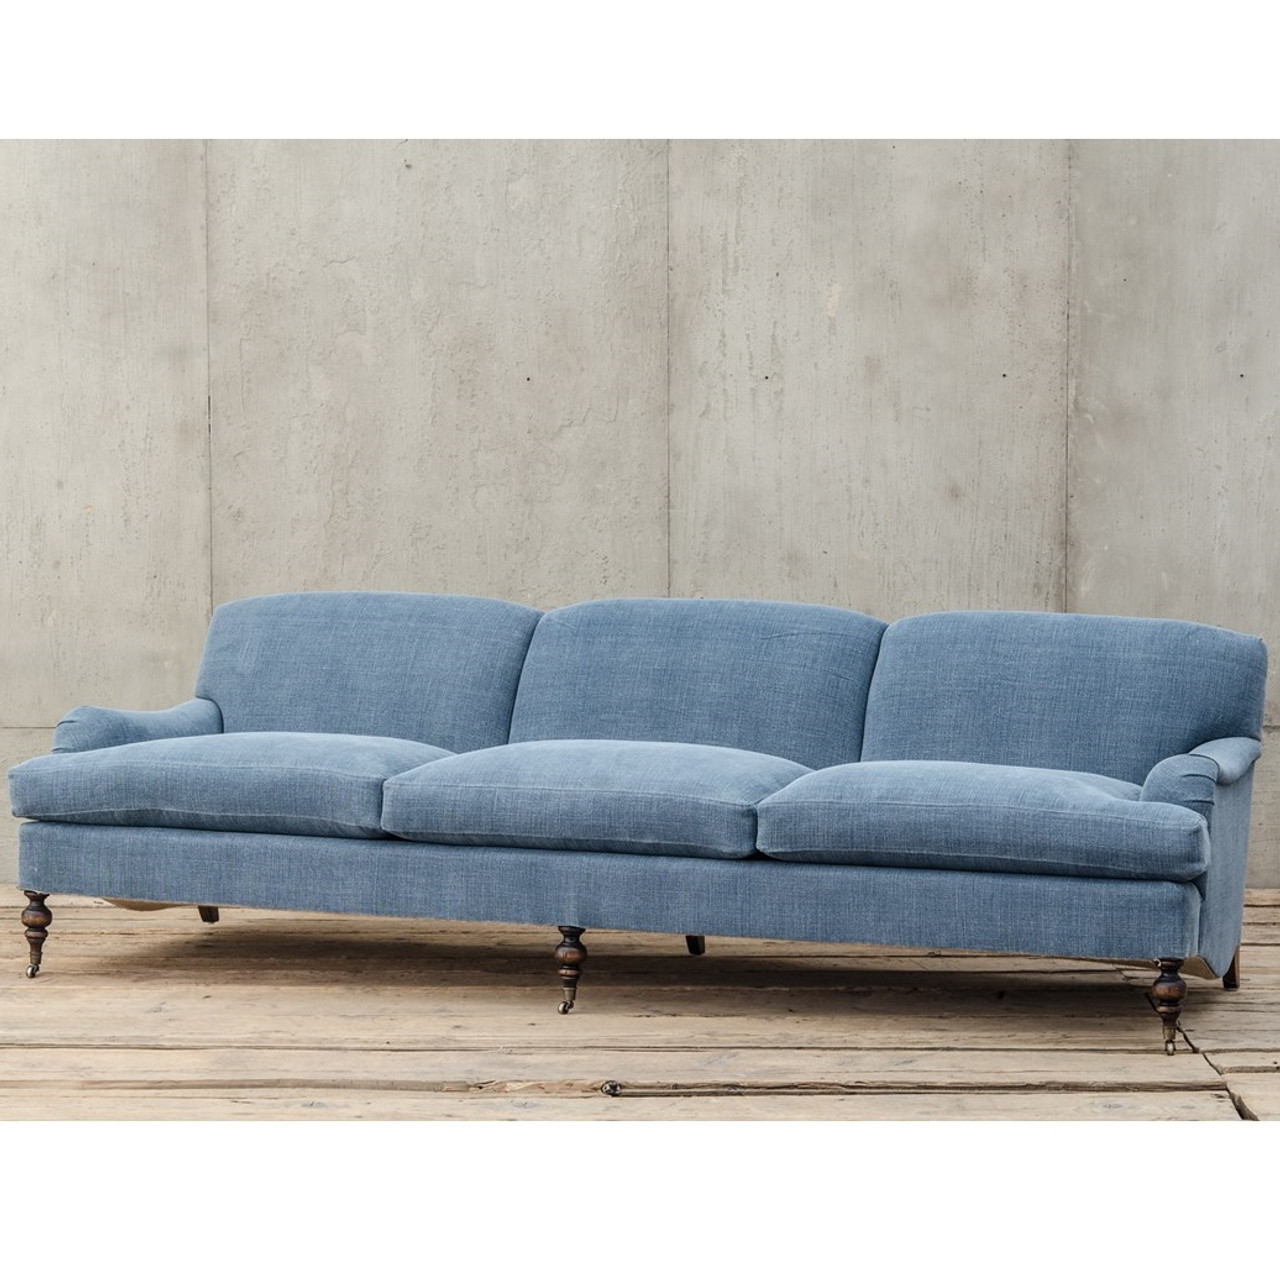 Professor Plum's Blue Linen Upholstered English Roll Arm Sofa ...